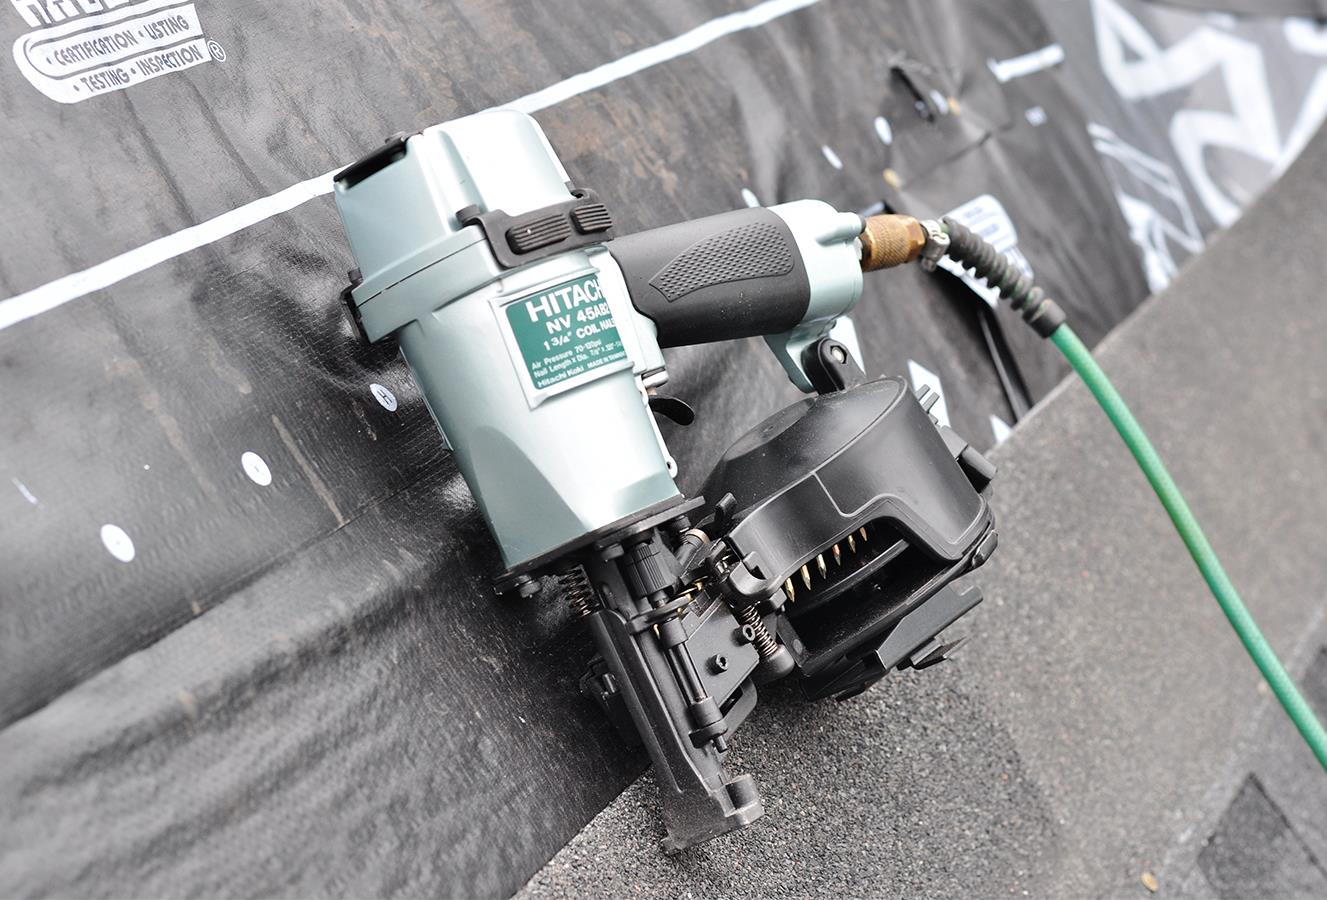 hitachi air nailer. nailing versus stapling for roof shingles hitachi air nailer